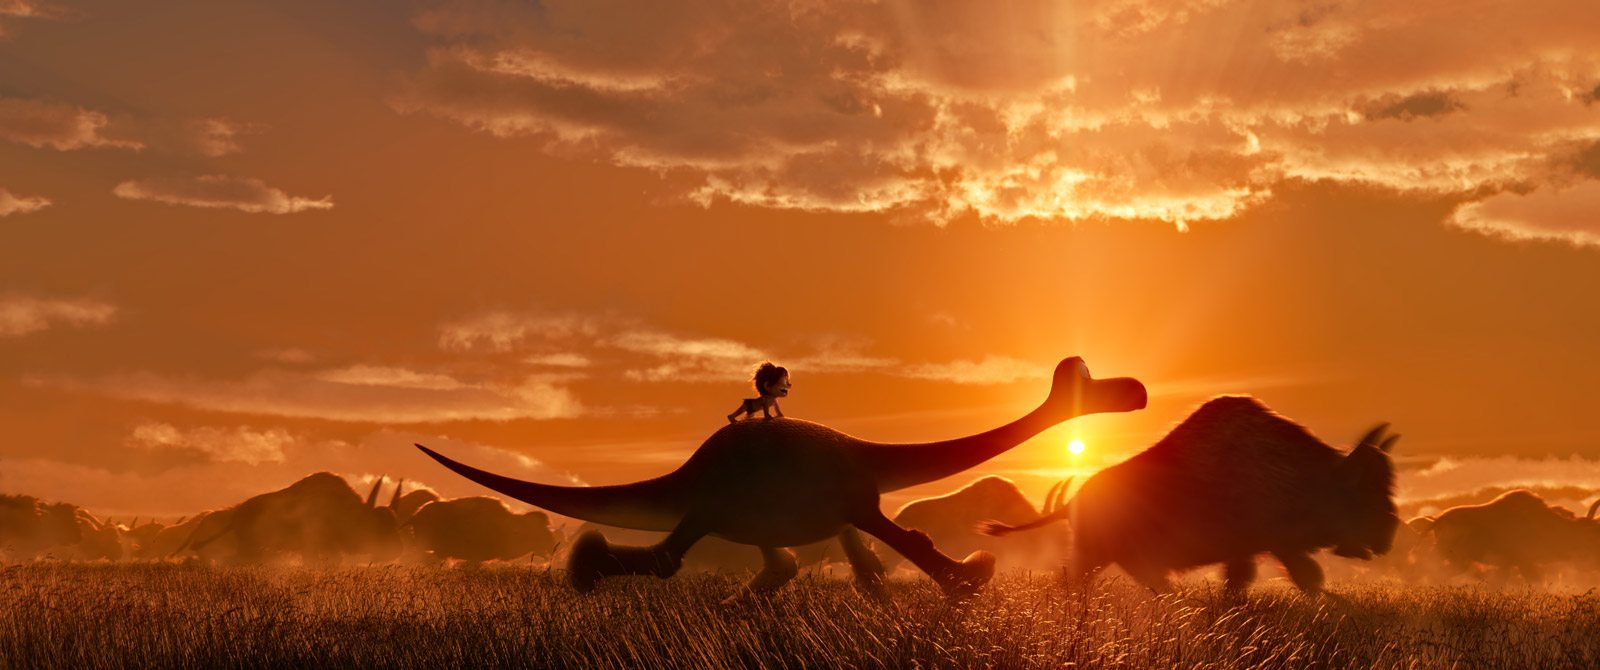 10 Things Parents Should Know About 'The Good Dinosaur'